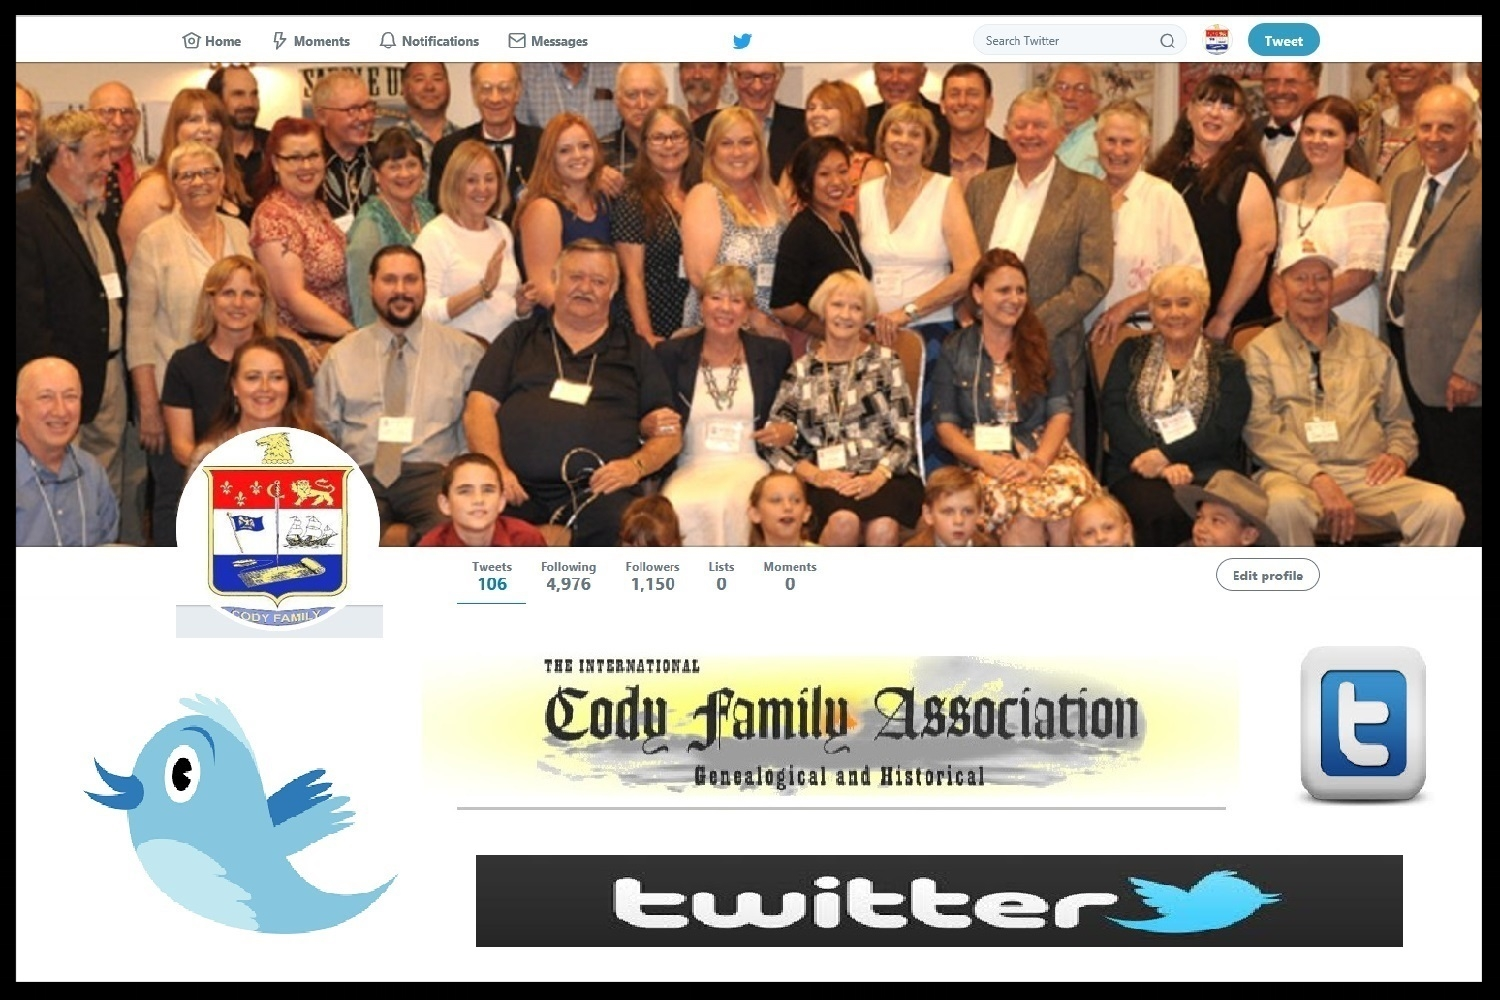 International Cody Family Association's Twitter Page